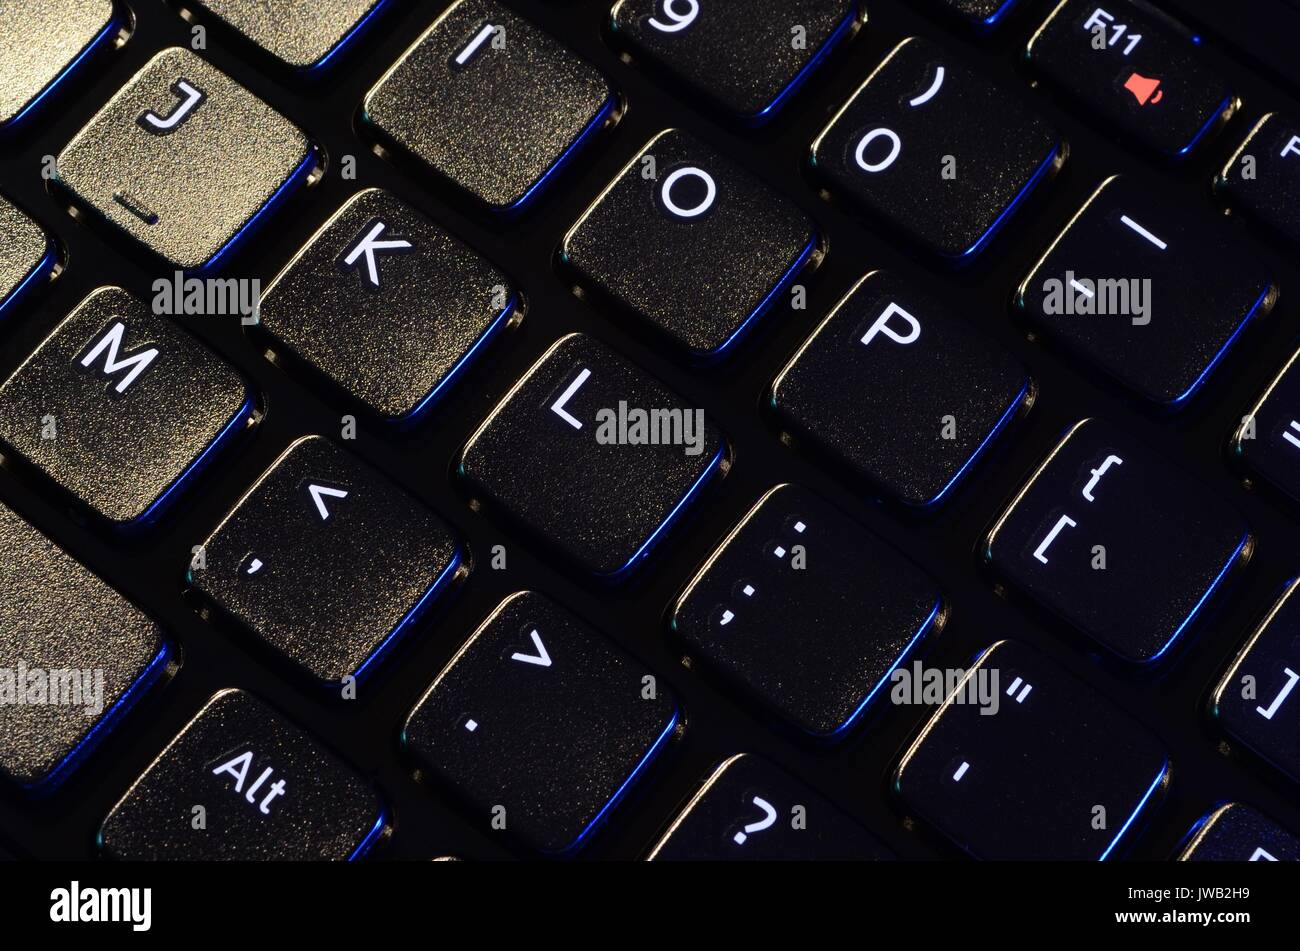 Angled view of close up of black laptop key pad with white letters, figures and symbols. Light coming from top left side. - Stock Image